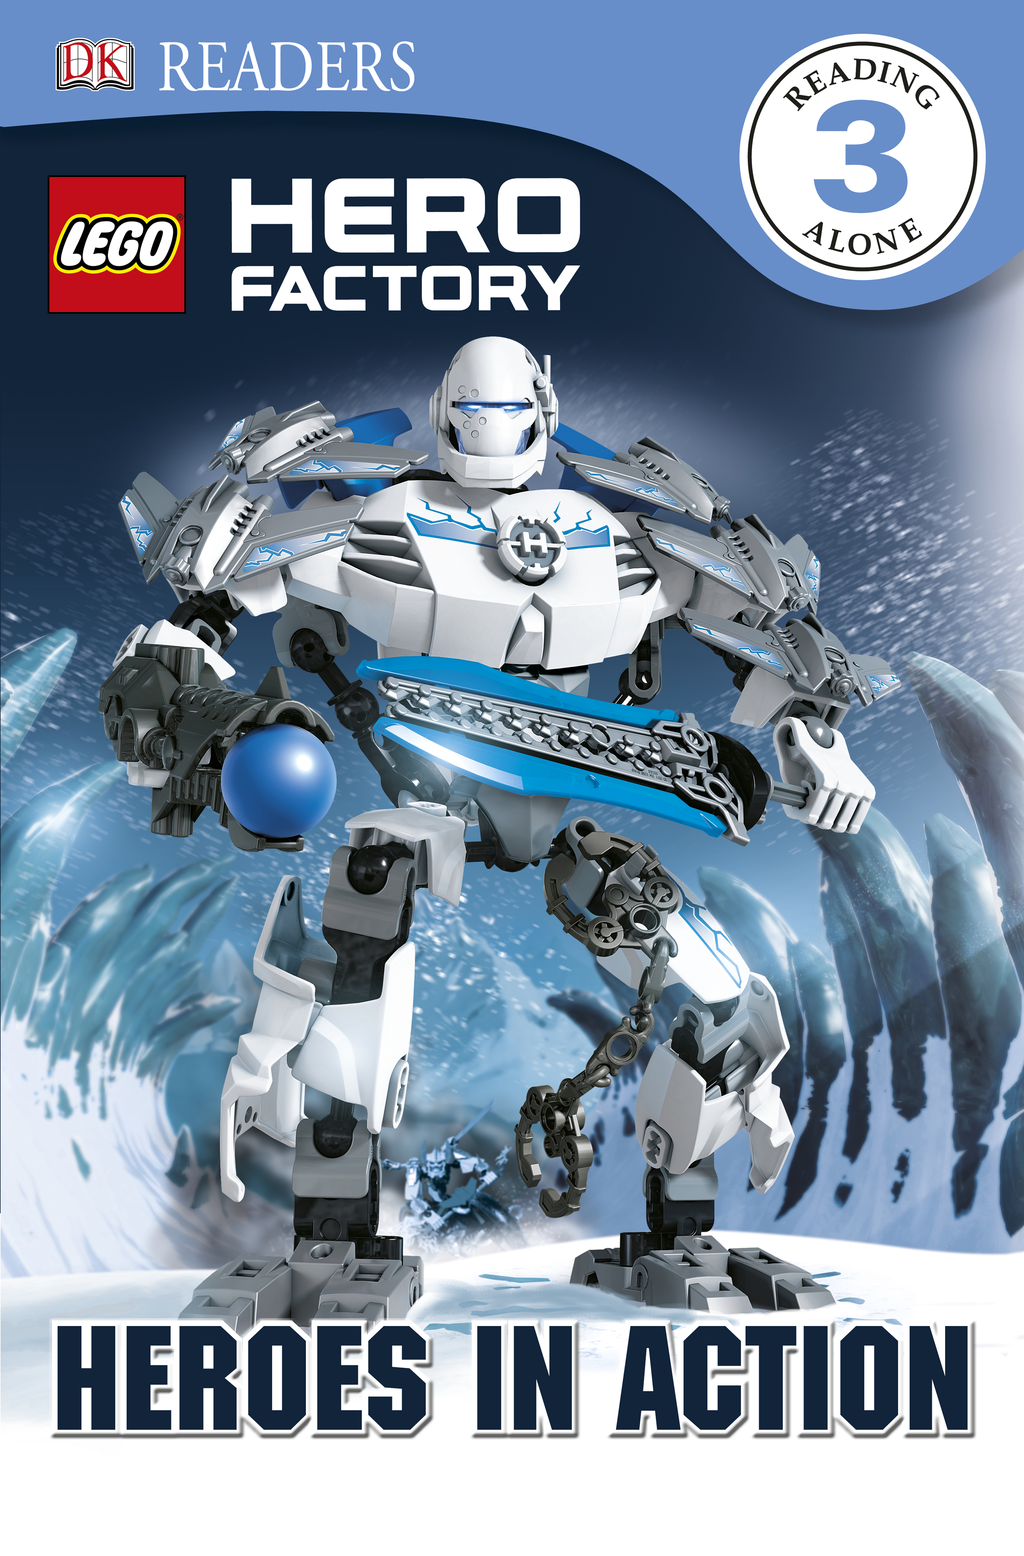 DK Readers: LEGO® Hero Factory: Heroes in Action